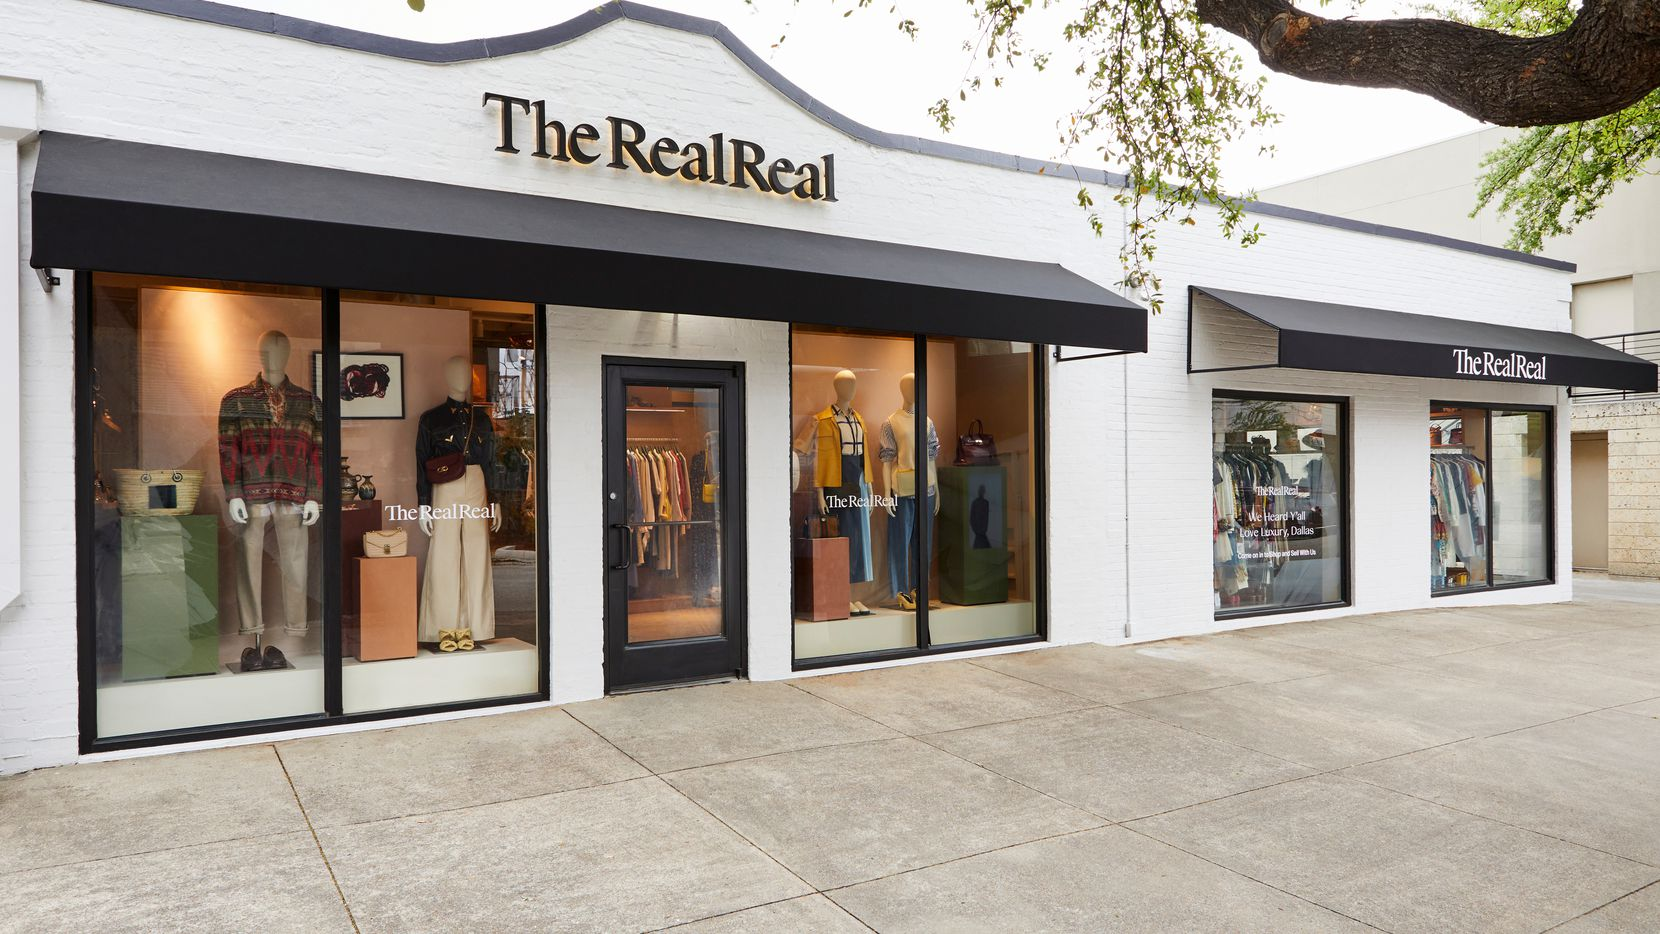 The RealReal opens April 8 at 3120 Knox Street in Dallas. The store is taking over space that formerly housed Kate Spade New York and is one of the new stores coming to the Knox District.